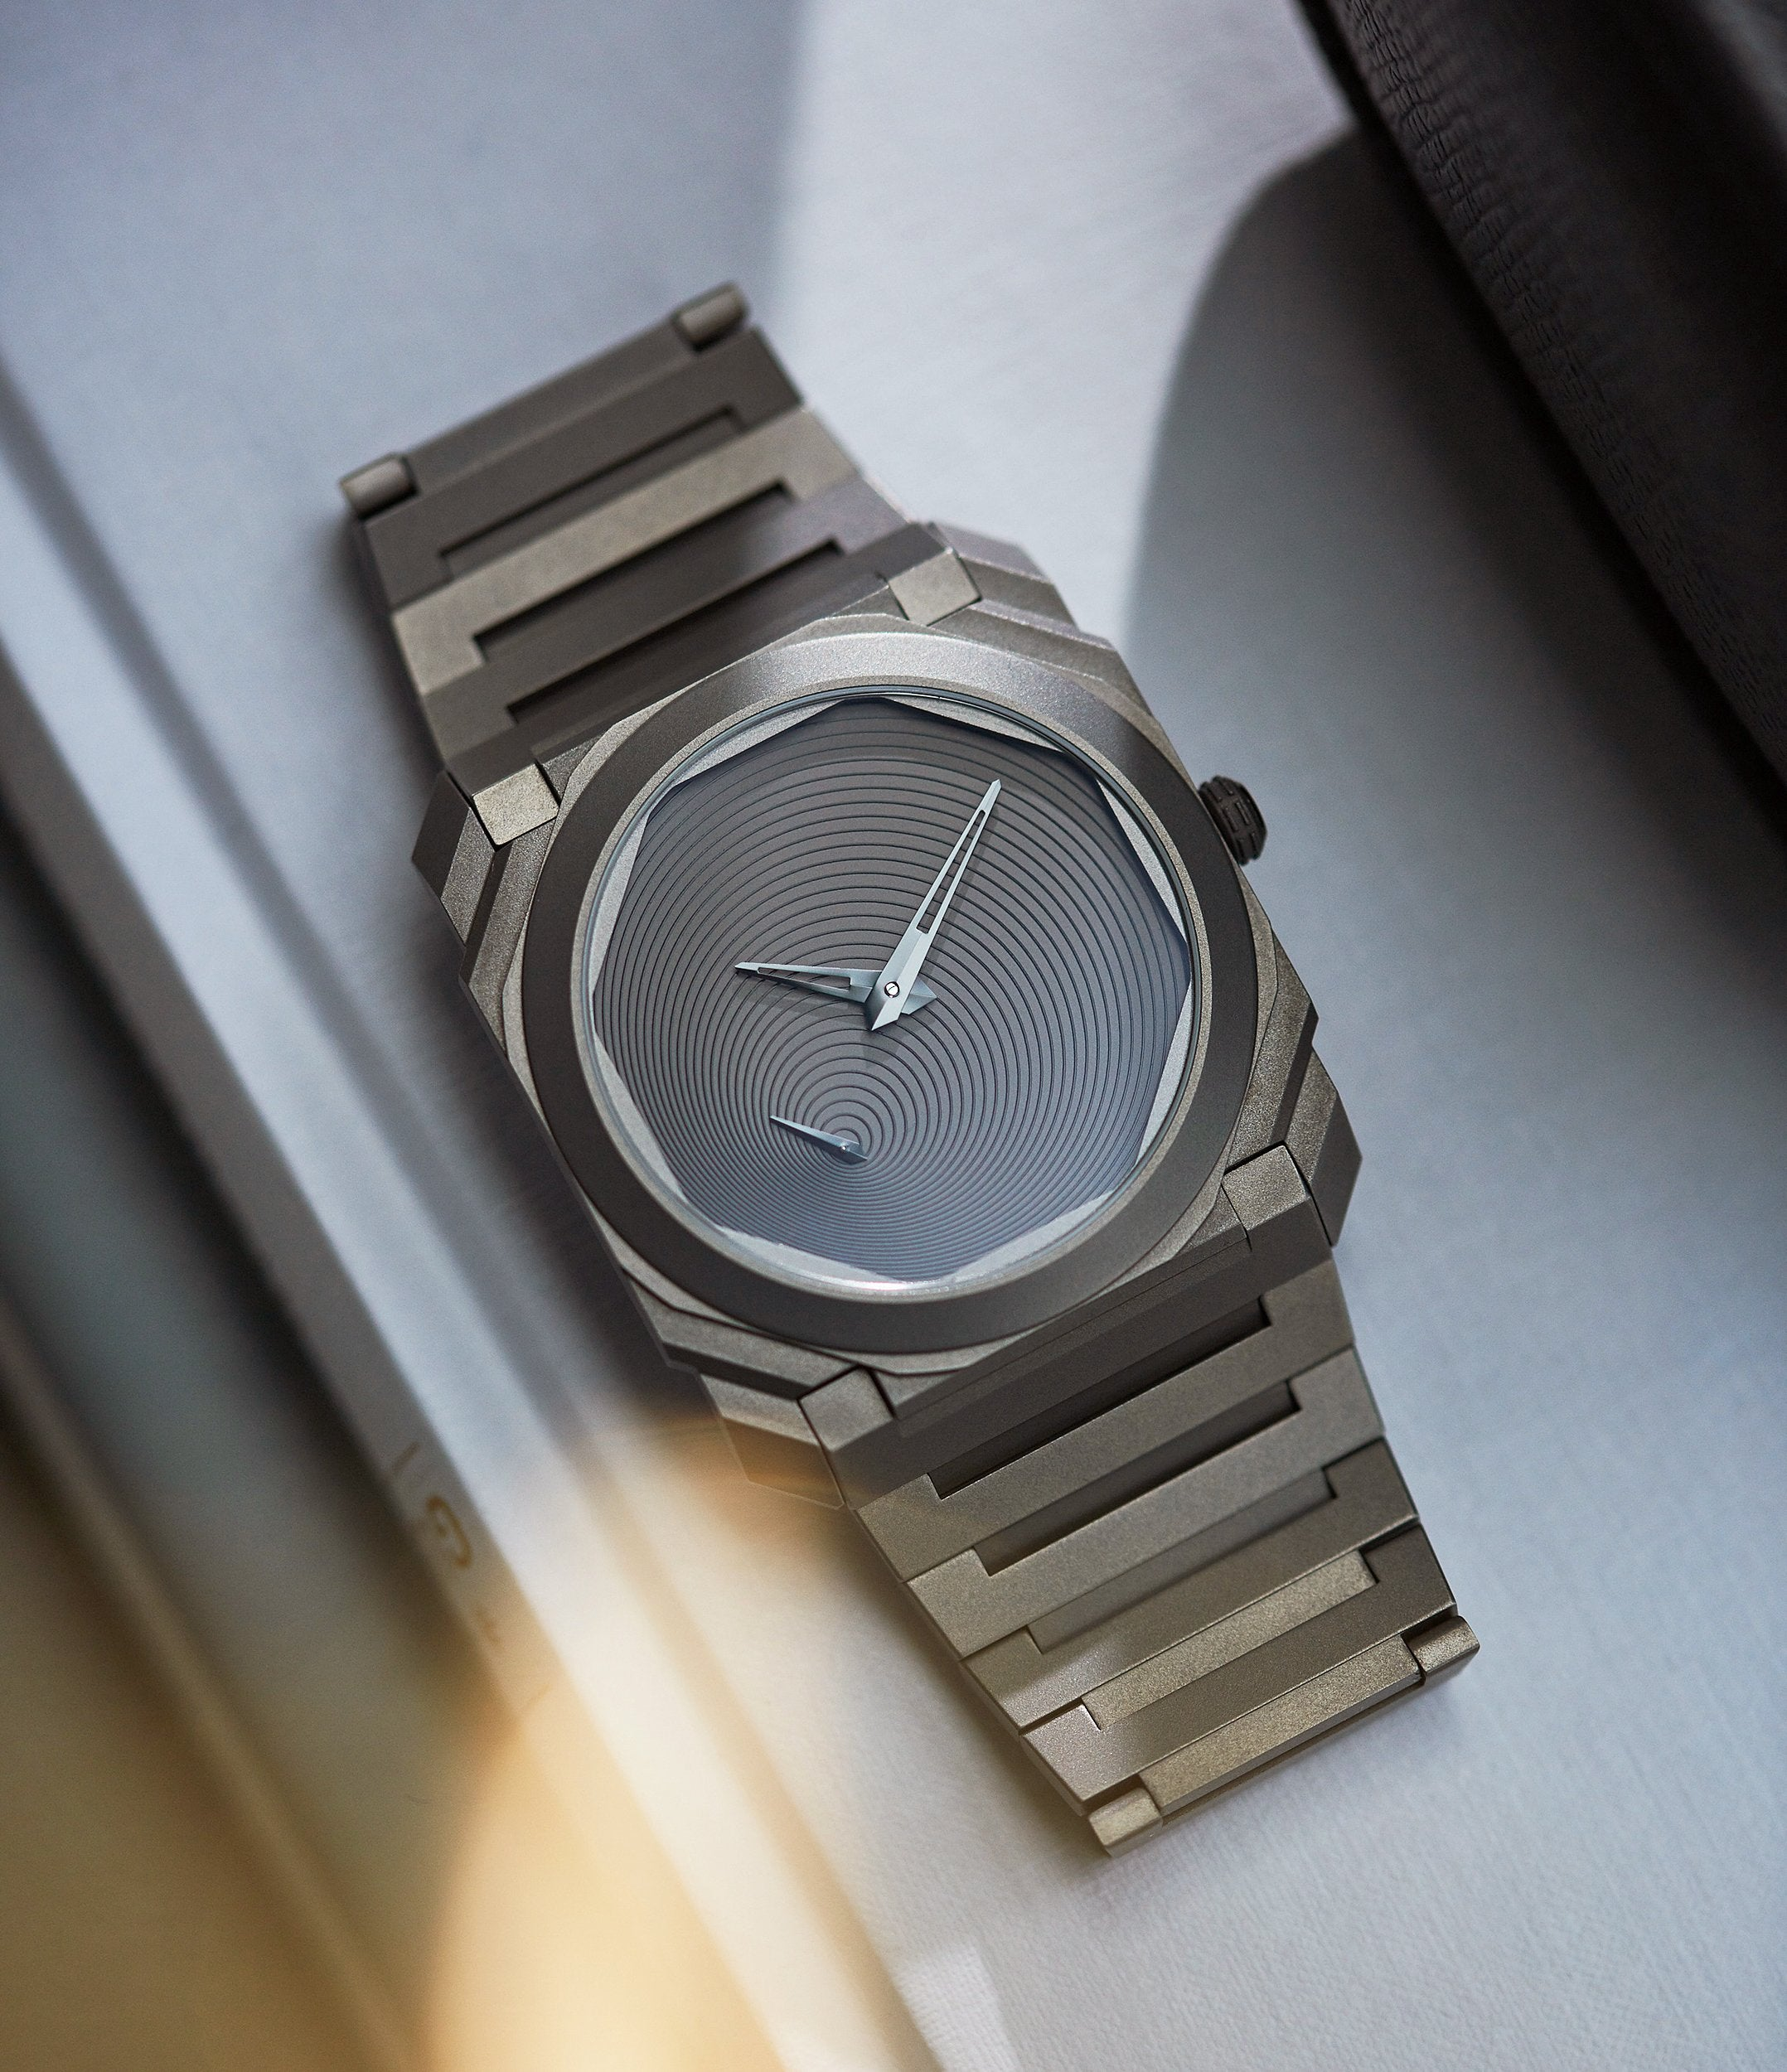 Bulgari Octa finissimo Japan limited edition designed by Tadao Ando for the Japanese market for A Collected Man London